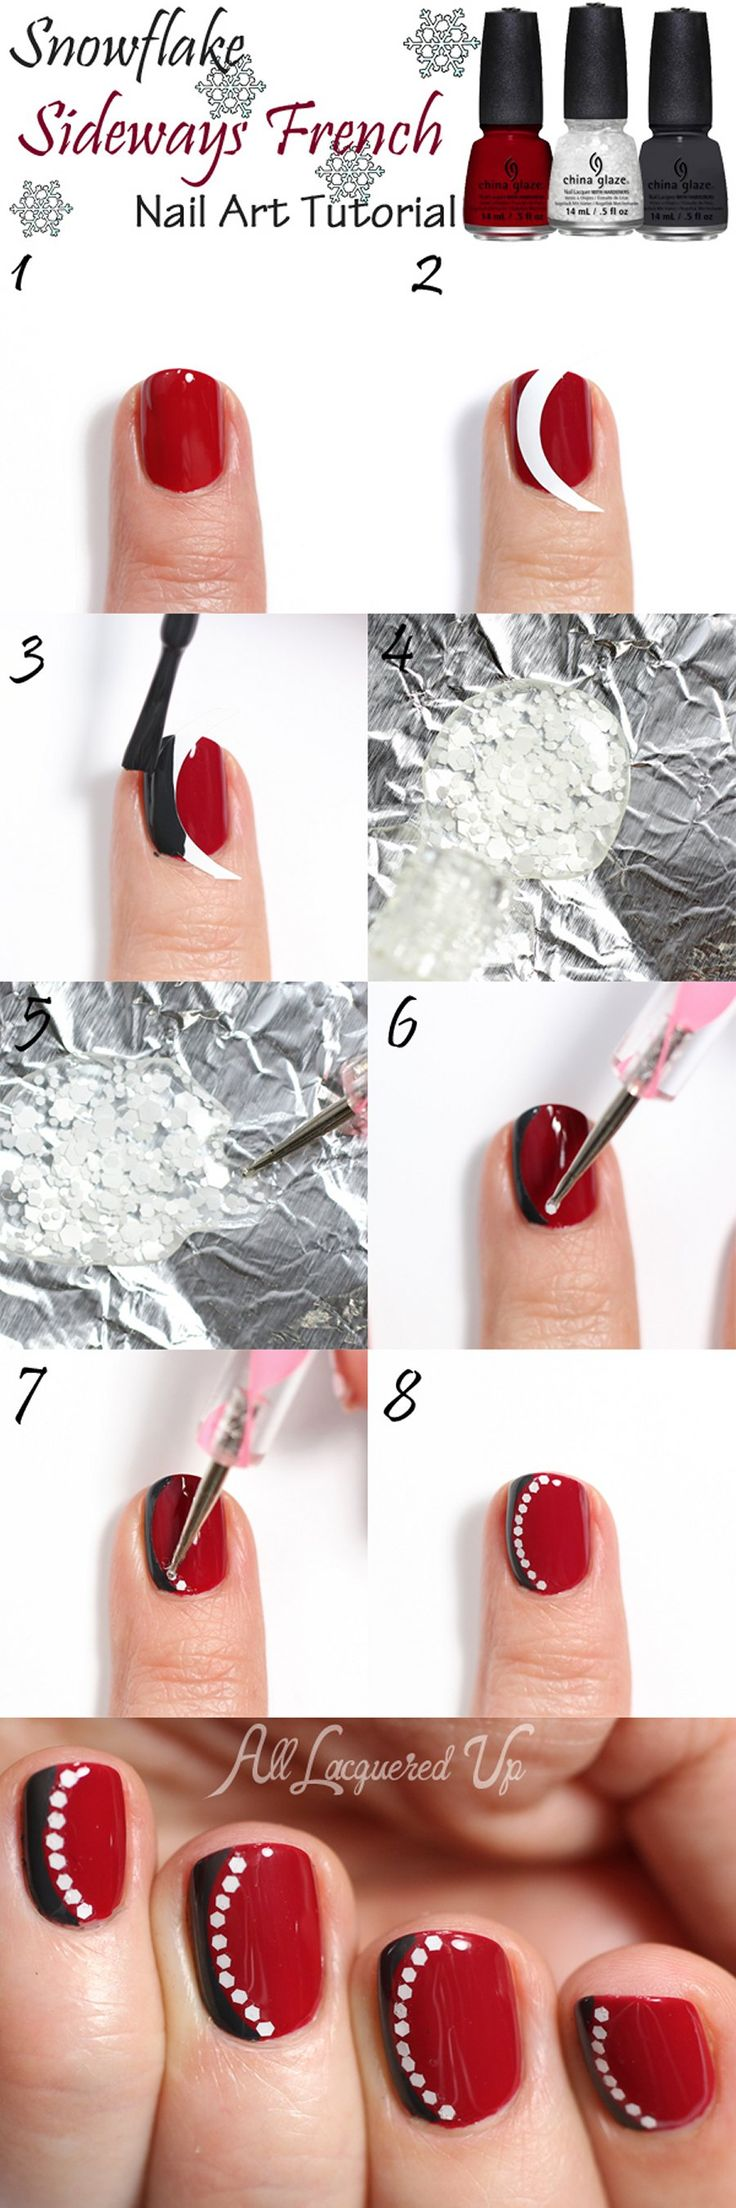 """Snowflake Sideways French Manicure Nail Art Tutorial"" by Michelle Mismas on All Lacquered Up; Polishes used: China Glaze ""Tip Your Hat"", ""Out Like A Light"", ""Chillin With My Snow-mies"""